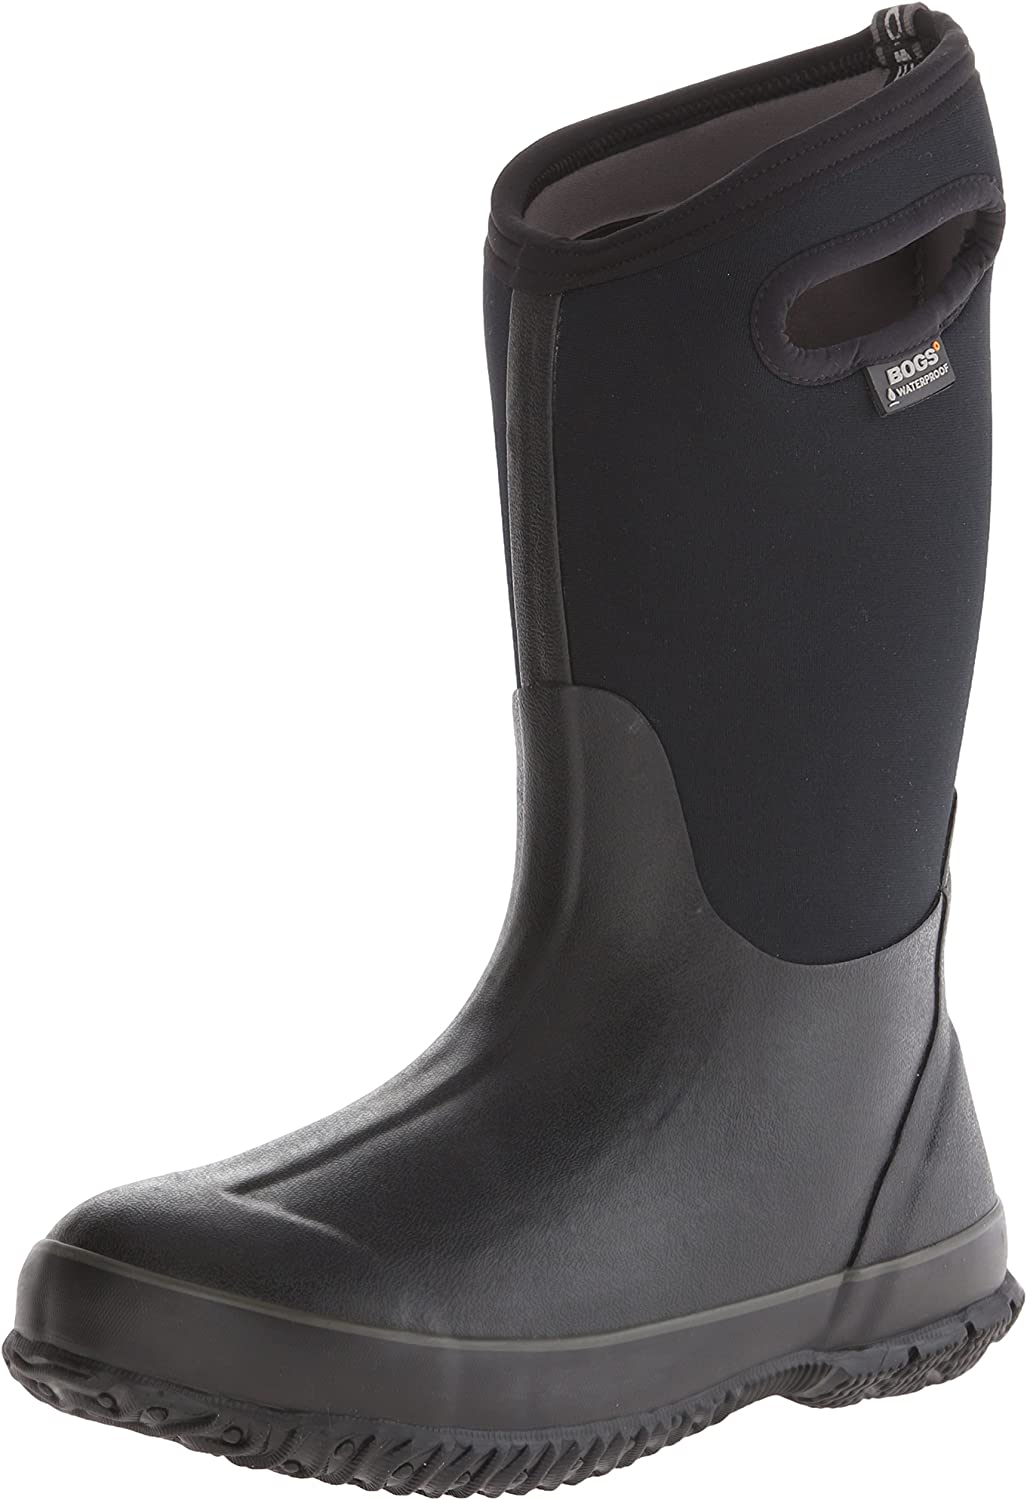 BOGS Unisex-Child Classic High Waterproof Insulated Rain Boot